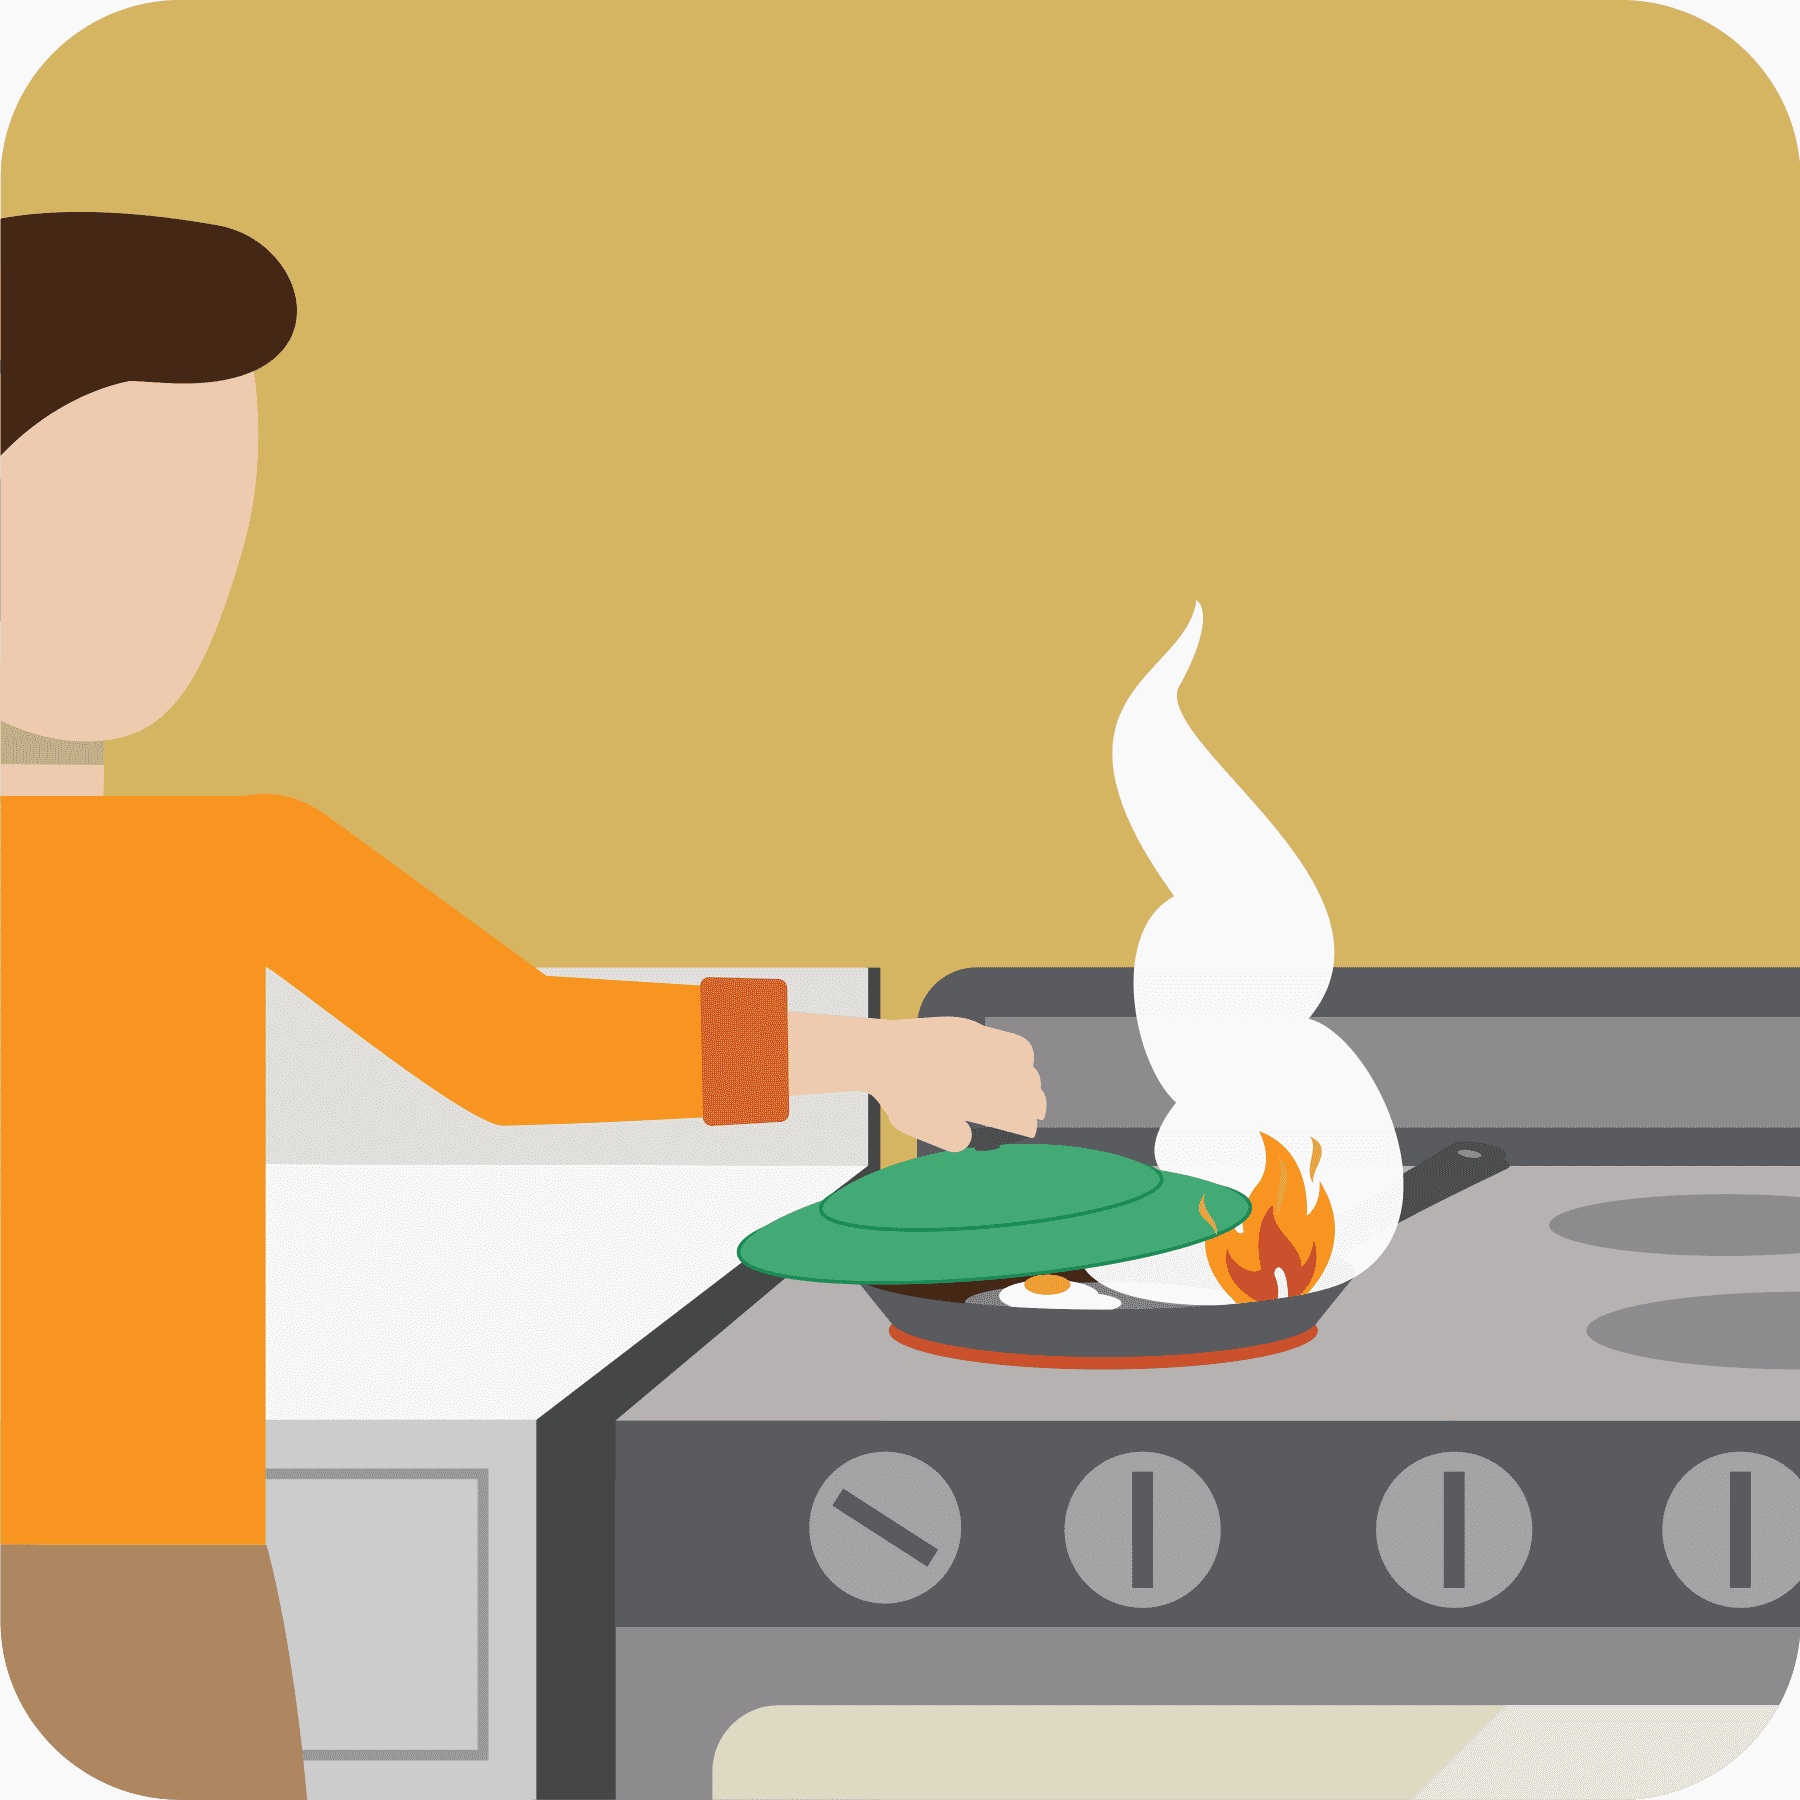 Woman placing lid on a pan that is on fire.